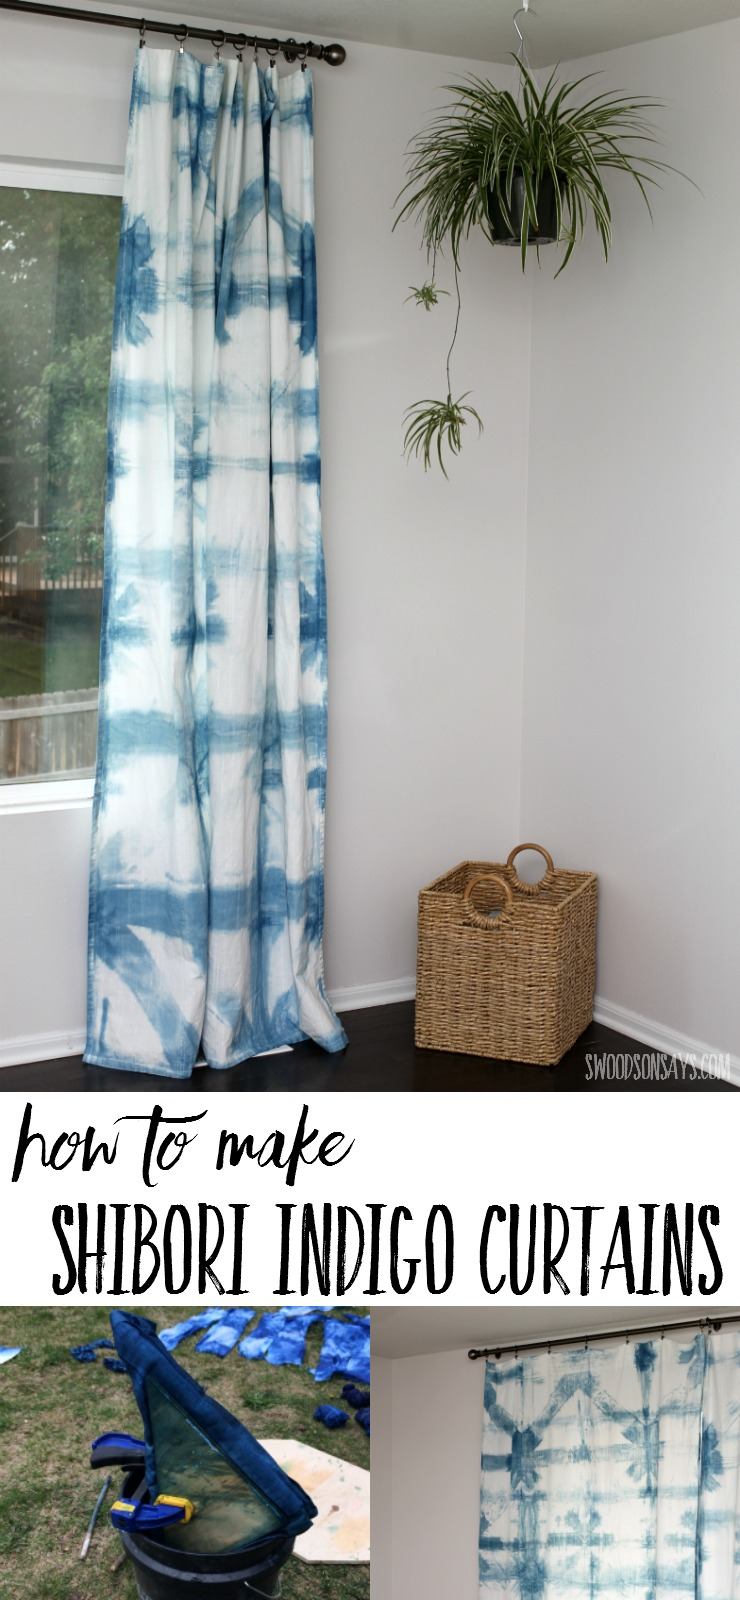 See how to make diy shibori curtains with this picture tutorial! Indigo dye shibori is a beautiful cobination and these diy curtains look organic and airy.